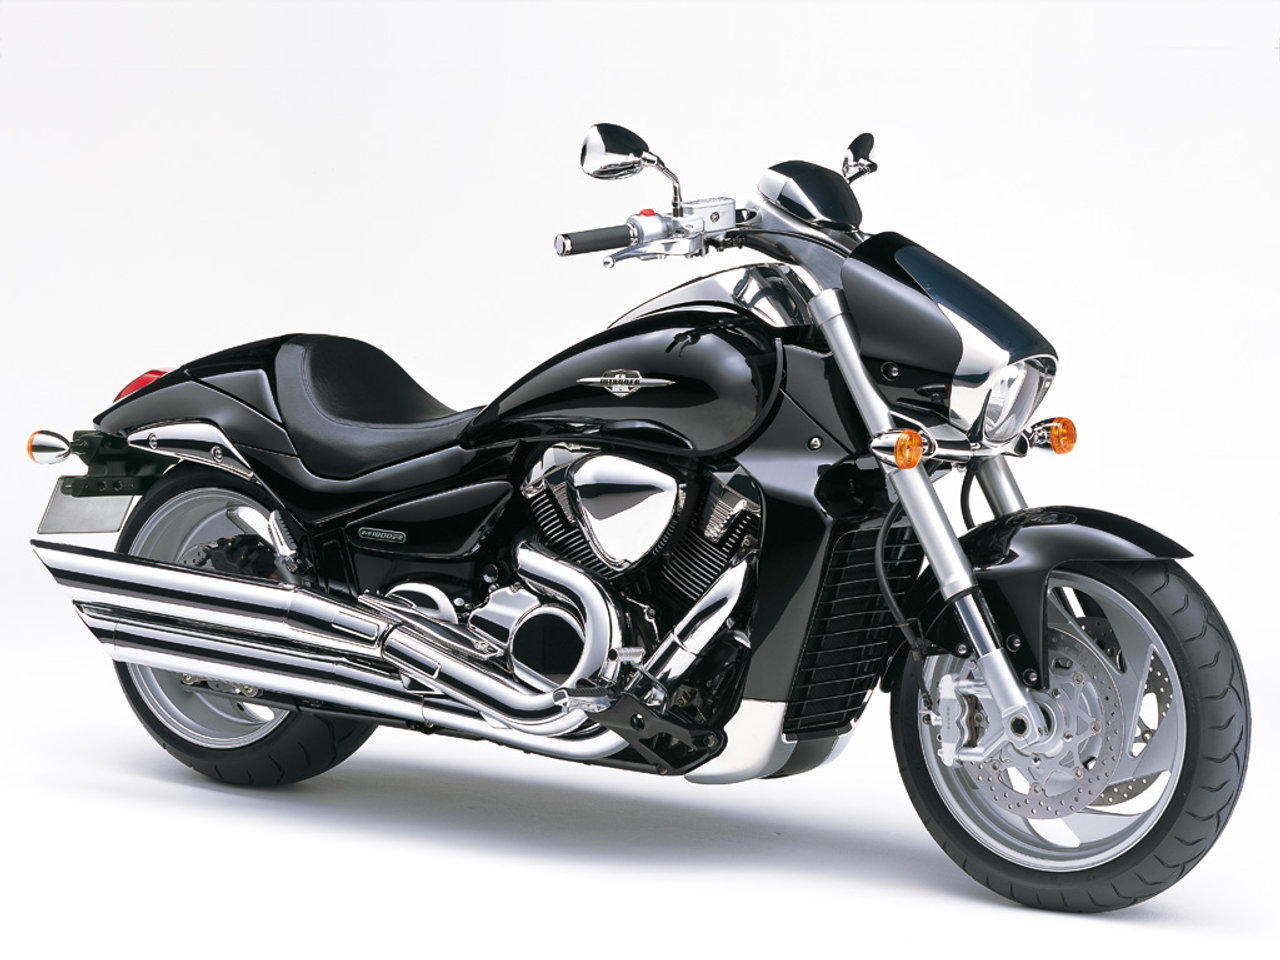 suzuki intruder m1800r price in pakistan new model. Black Bedroom Furniture Sets. Home Design Ideas